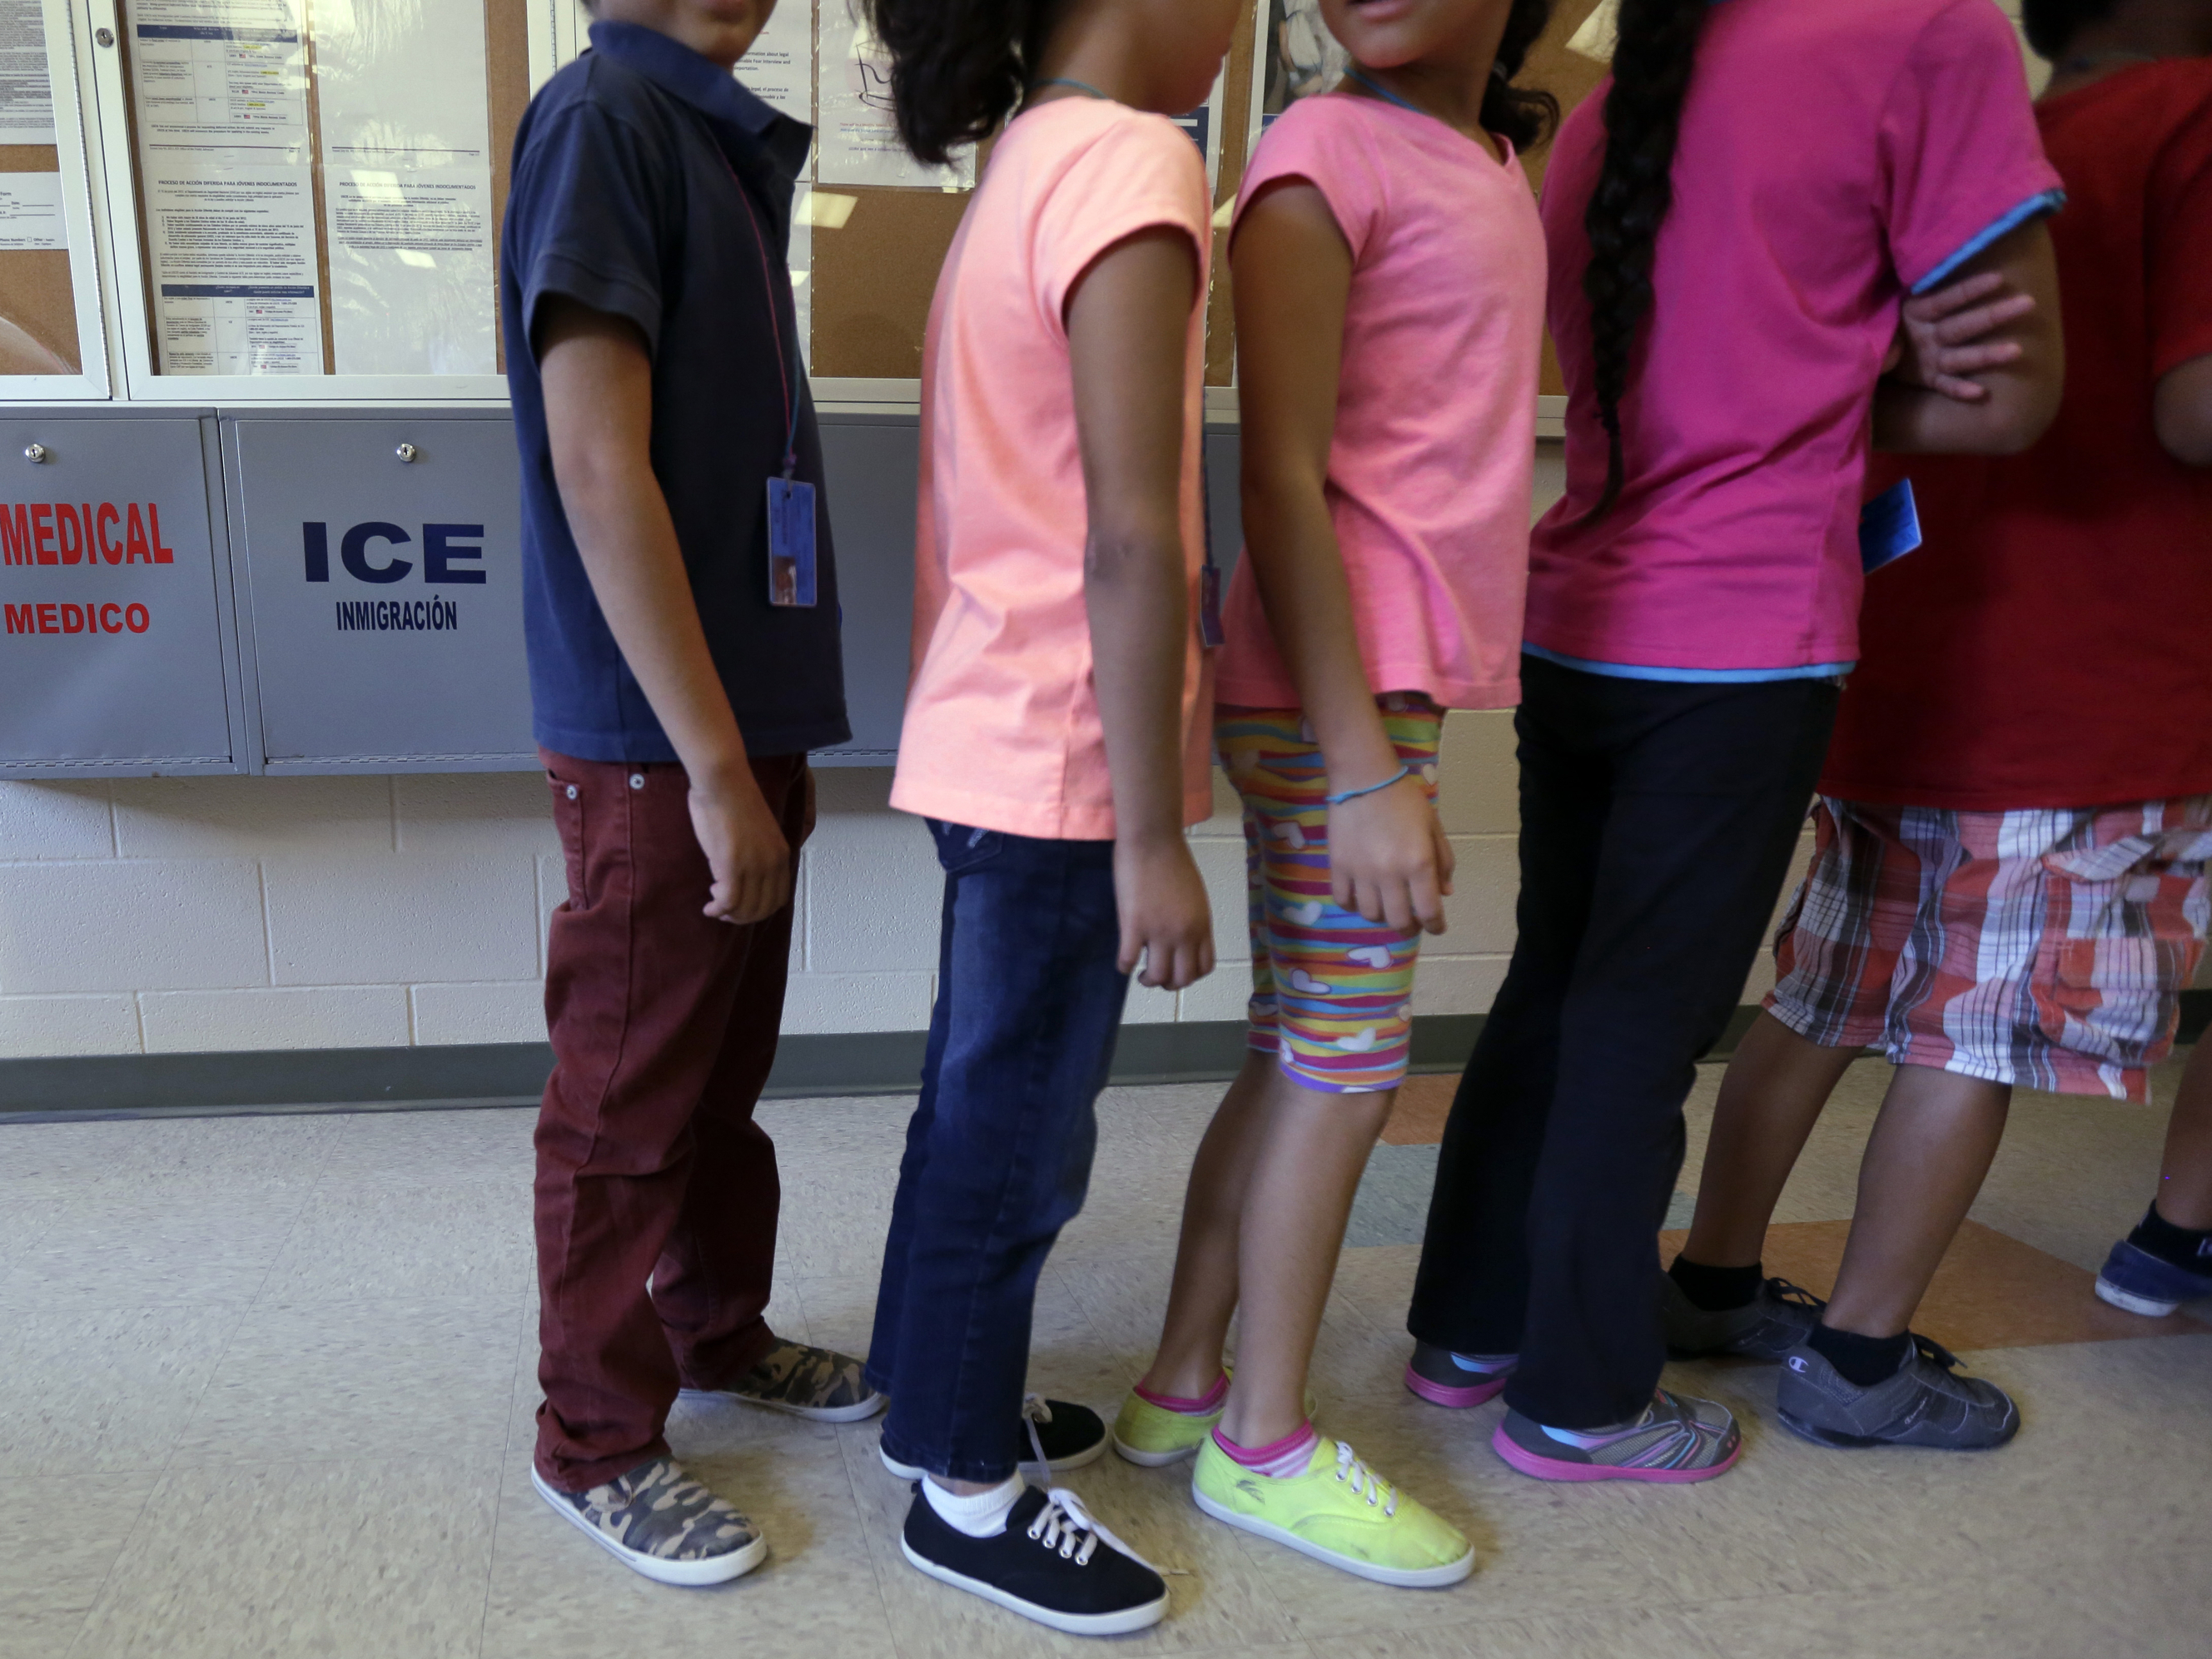 Appeals Court Rules Detained Migrant Children Should Get Soap, Sleep, Clean Water